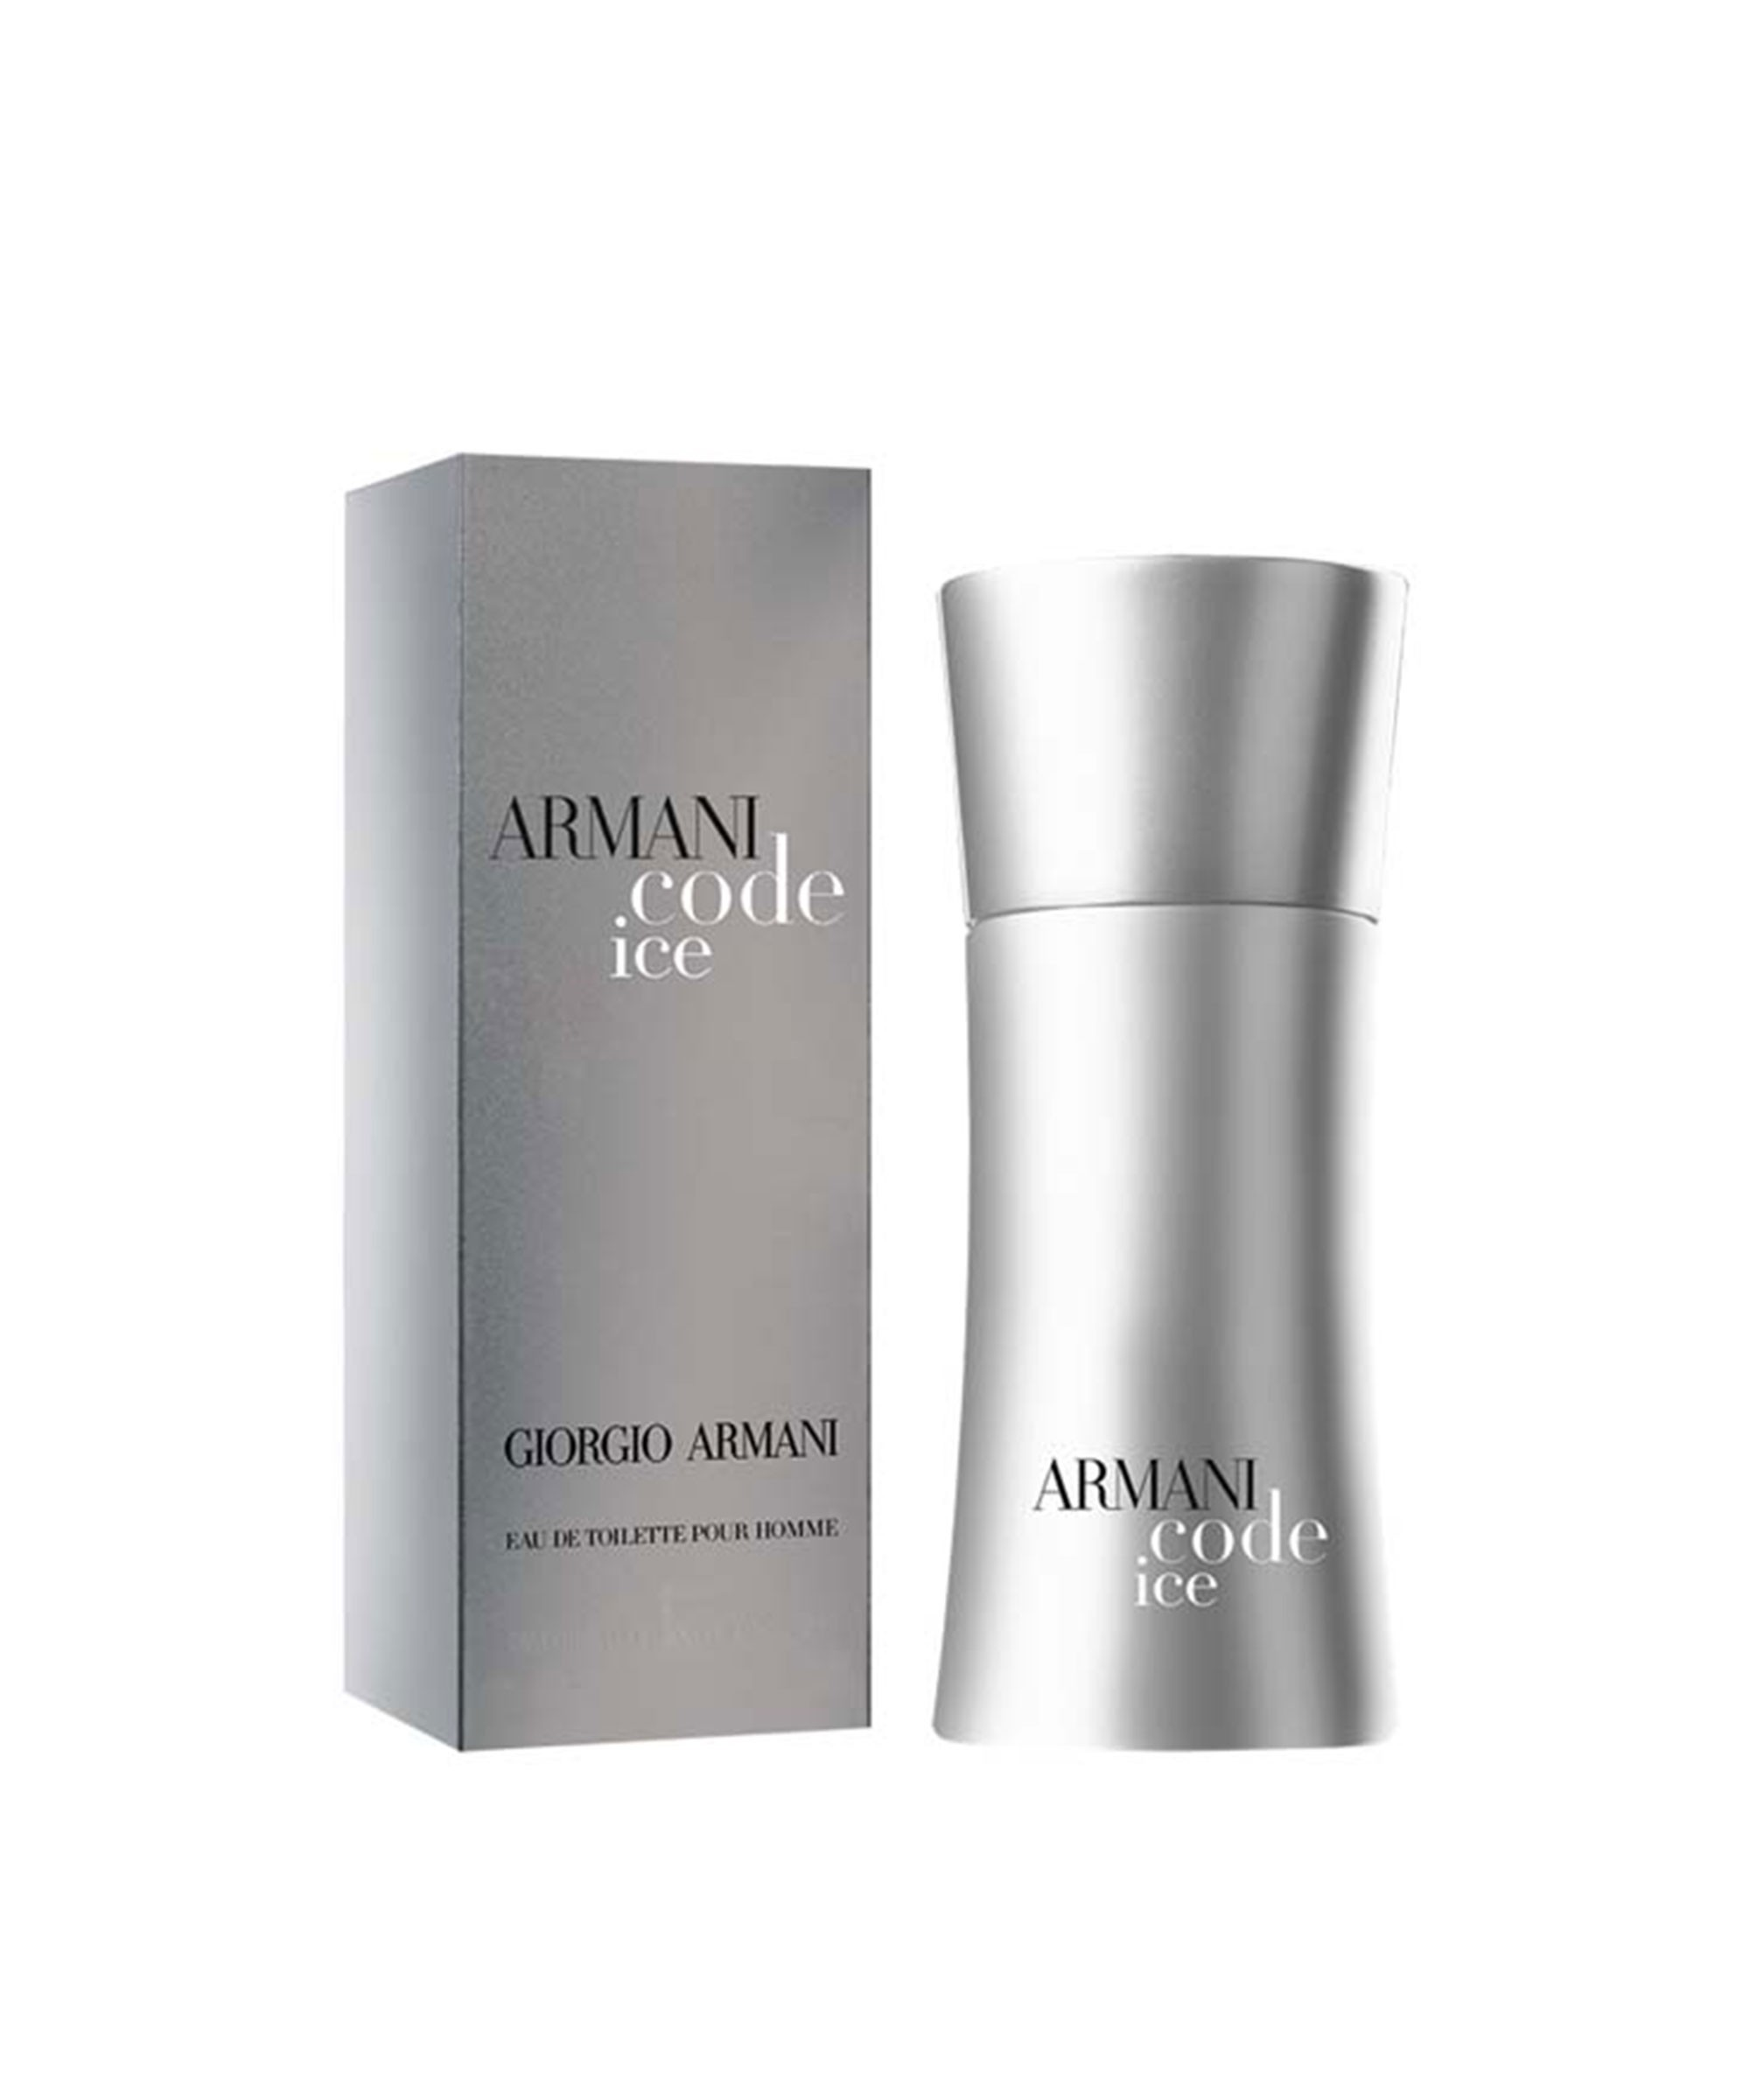 ARMANI CODE ICE 50ml EDT